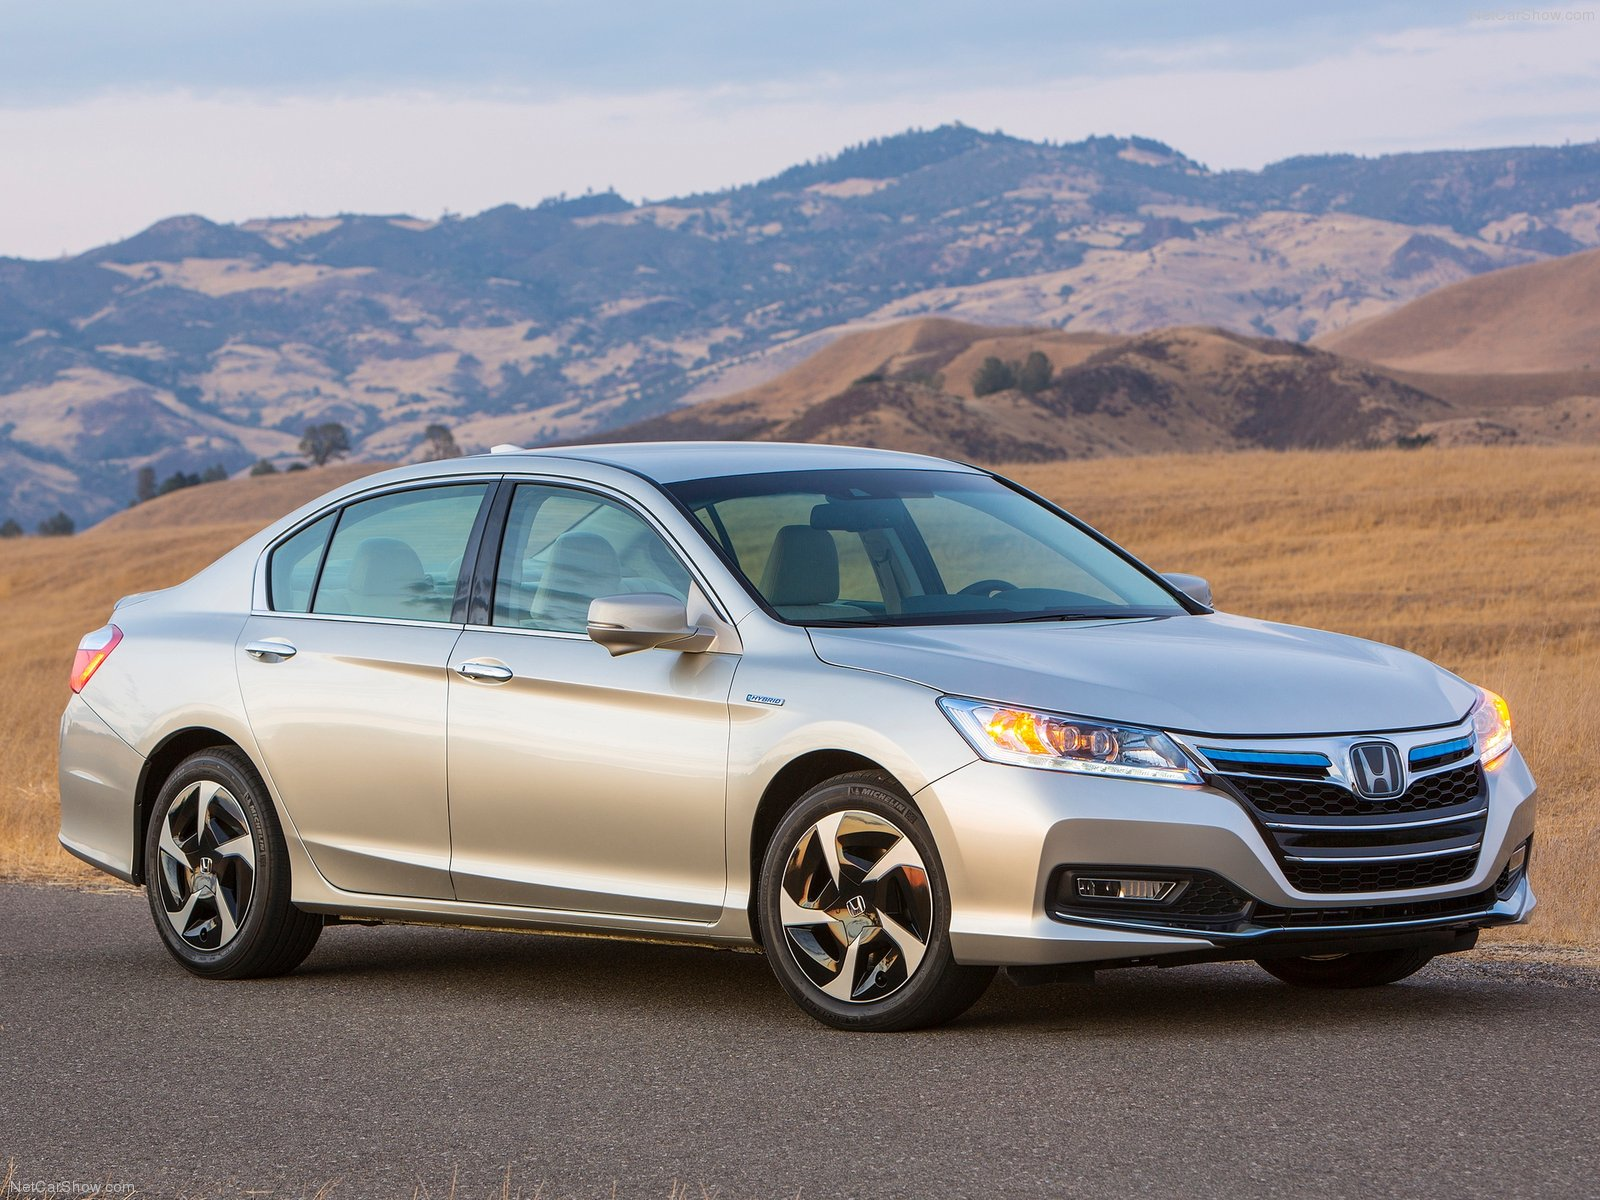 Honda Accord PHEV photo 148853